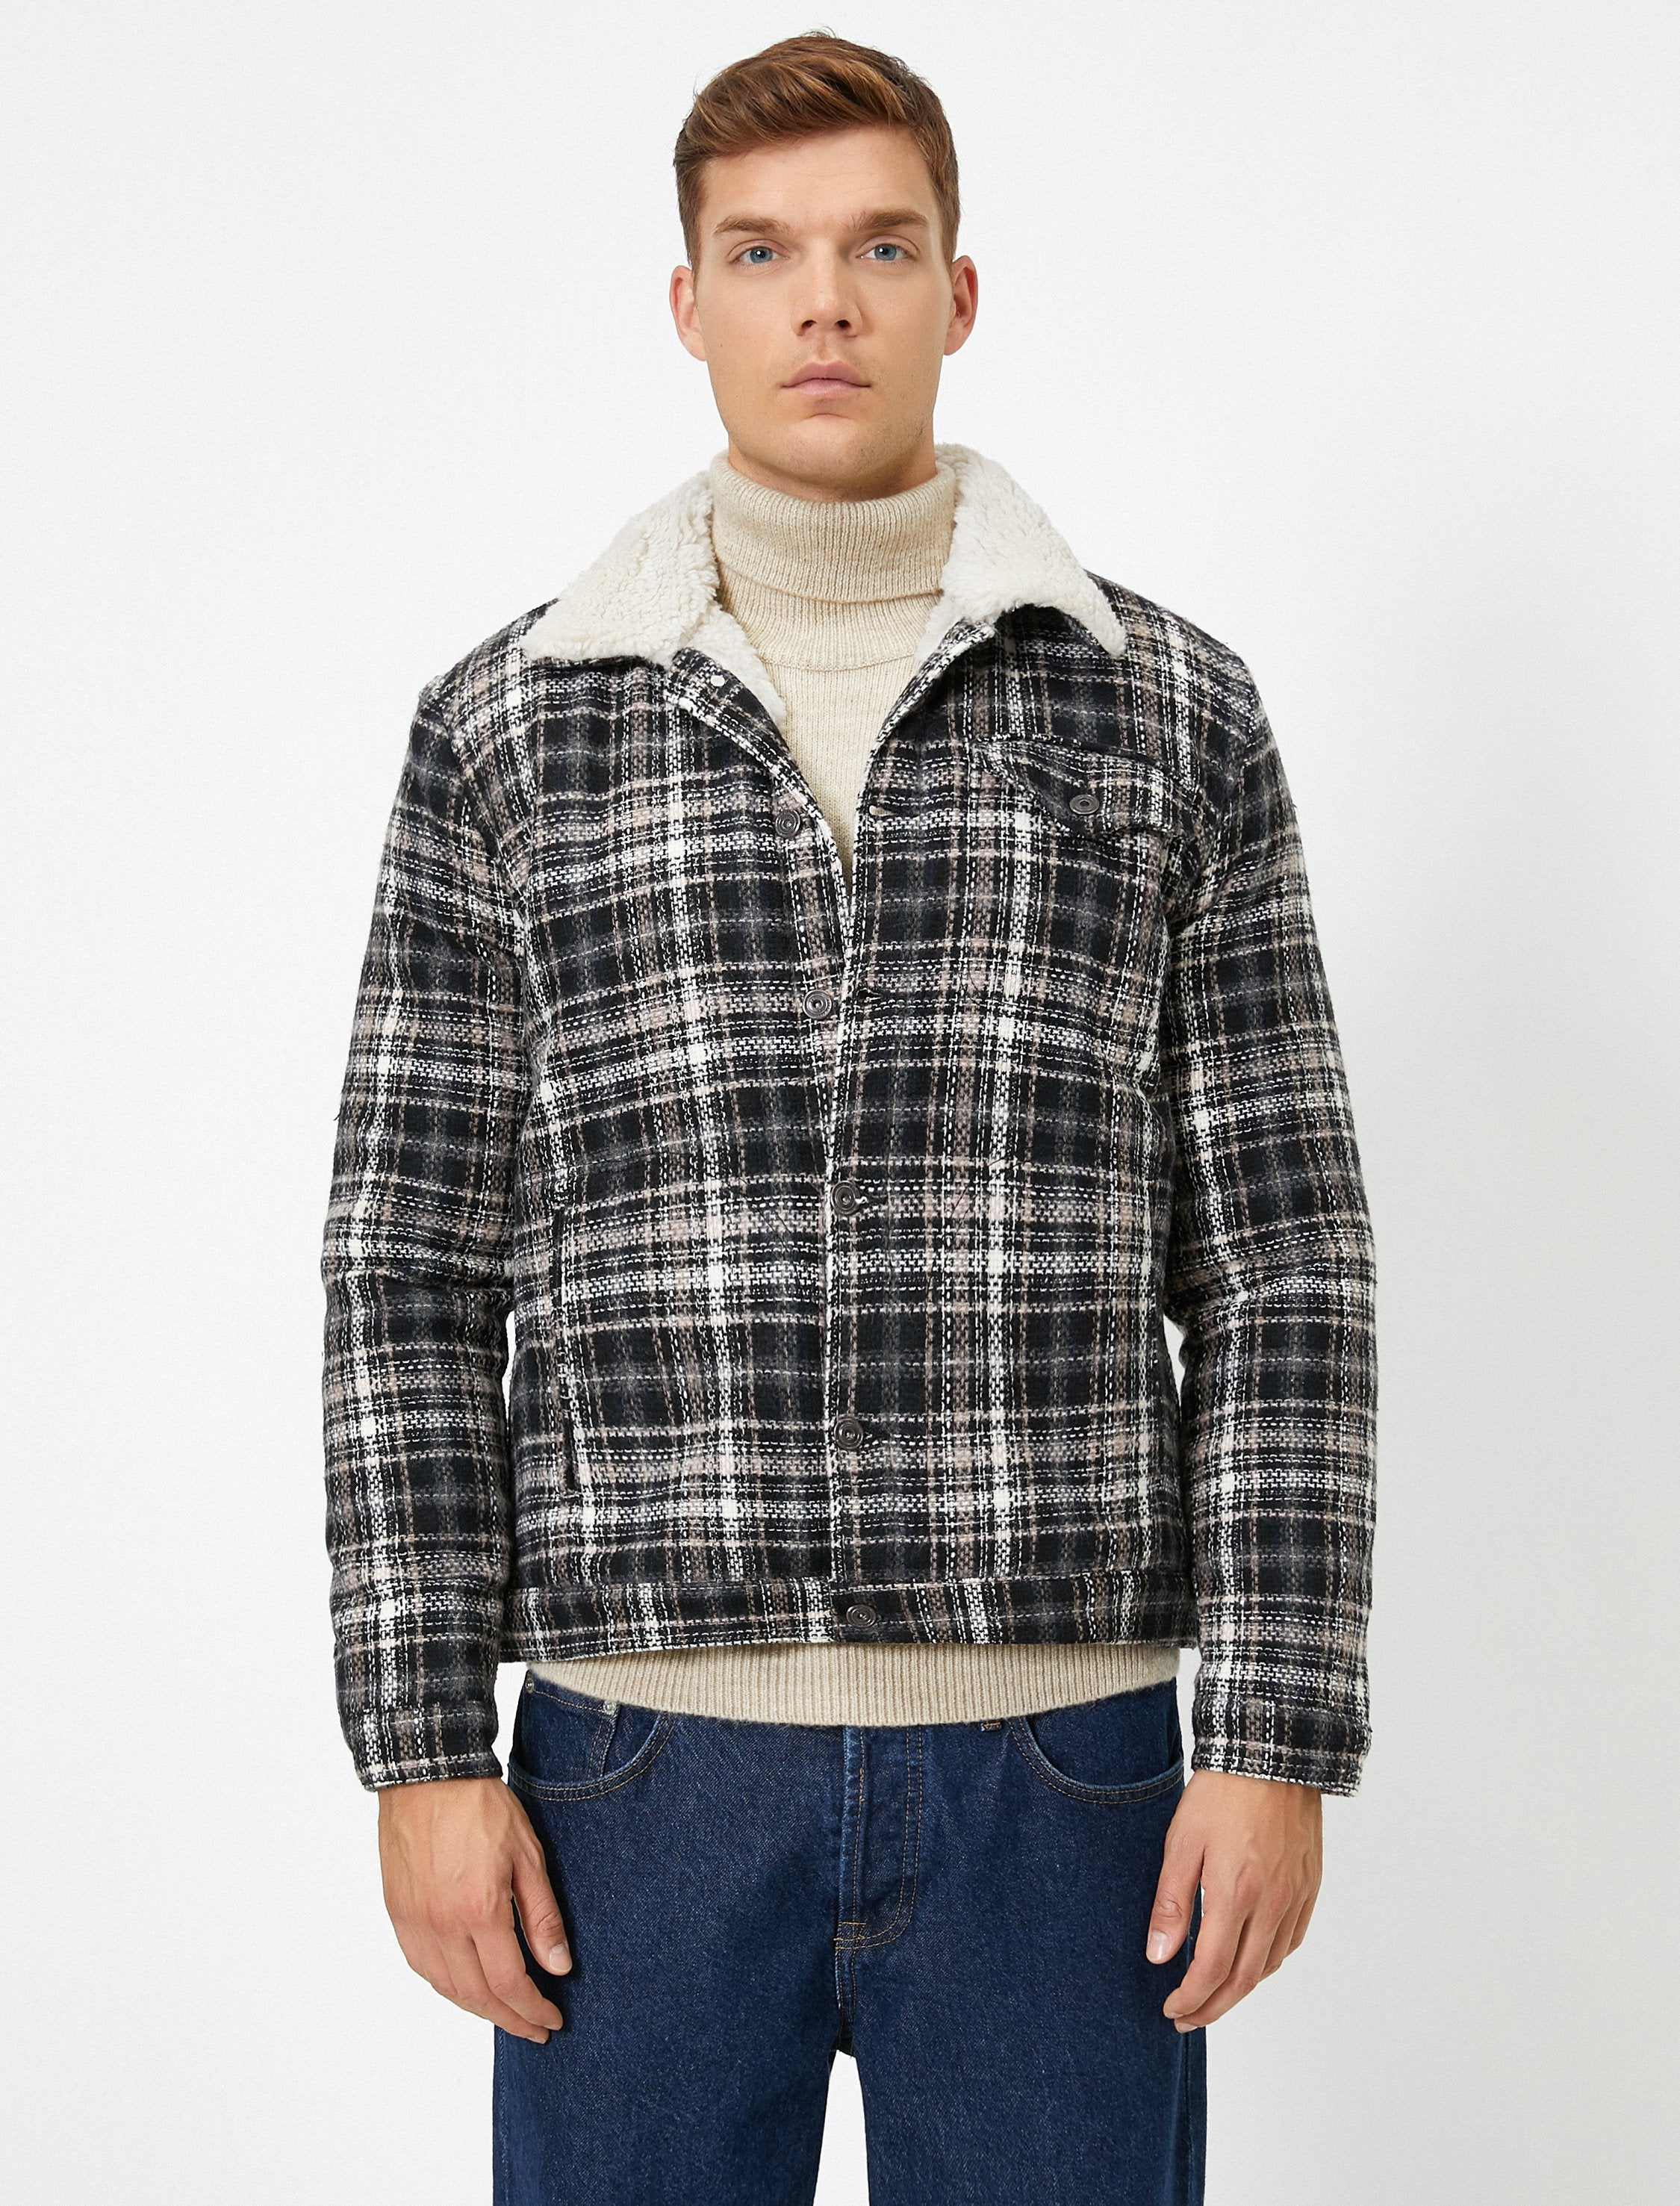 Plaid Zip-Up Jacket in Charcoal